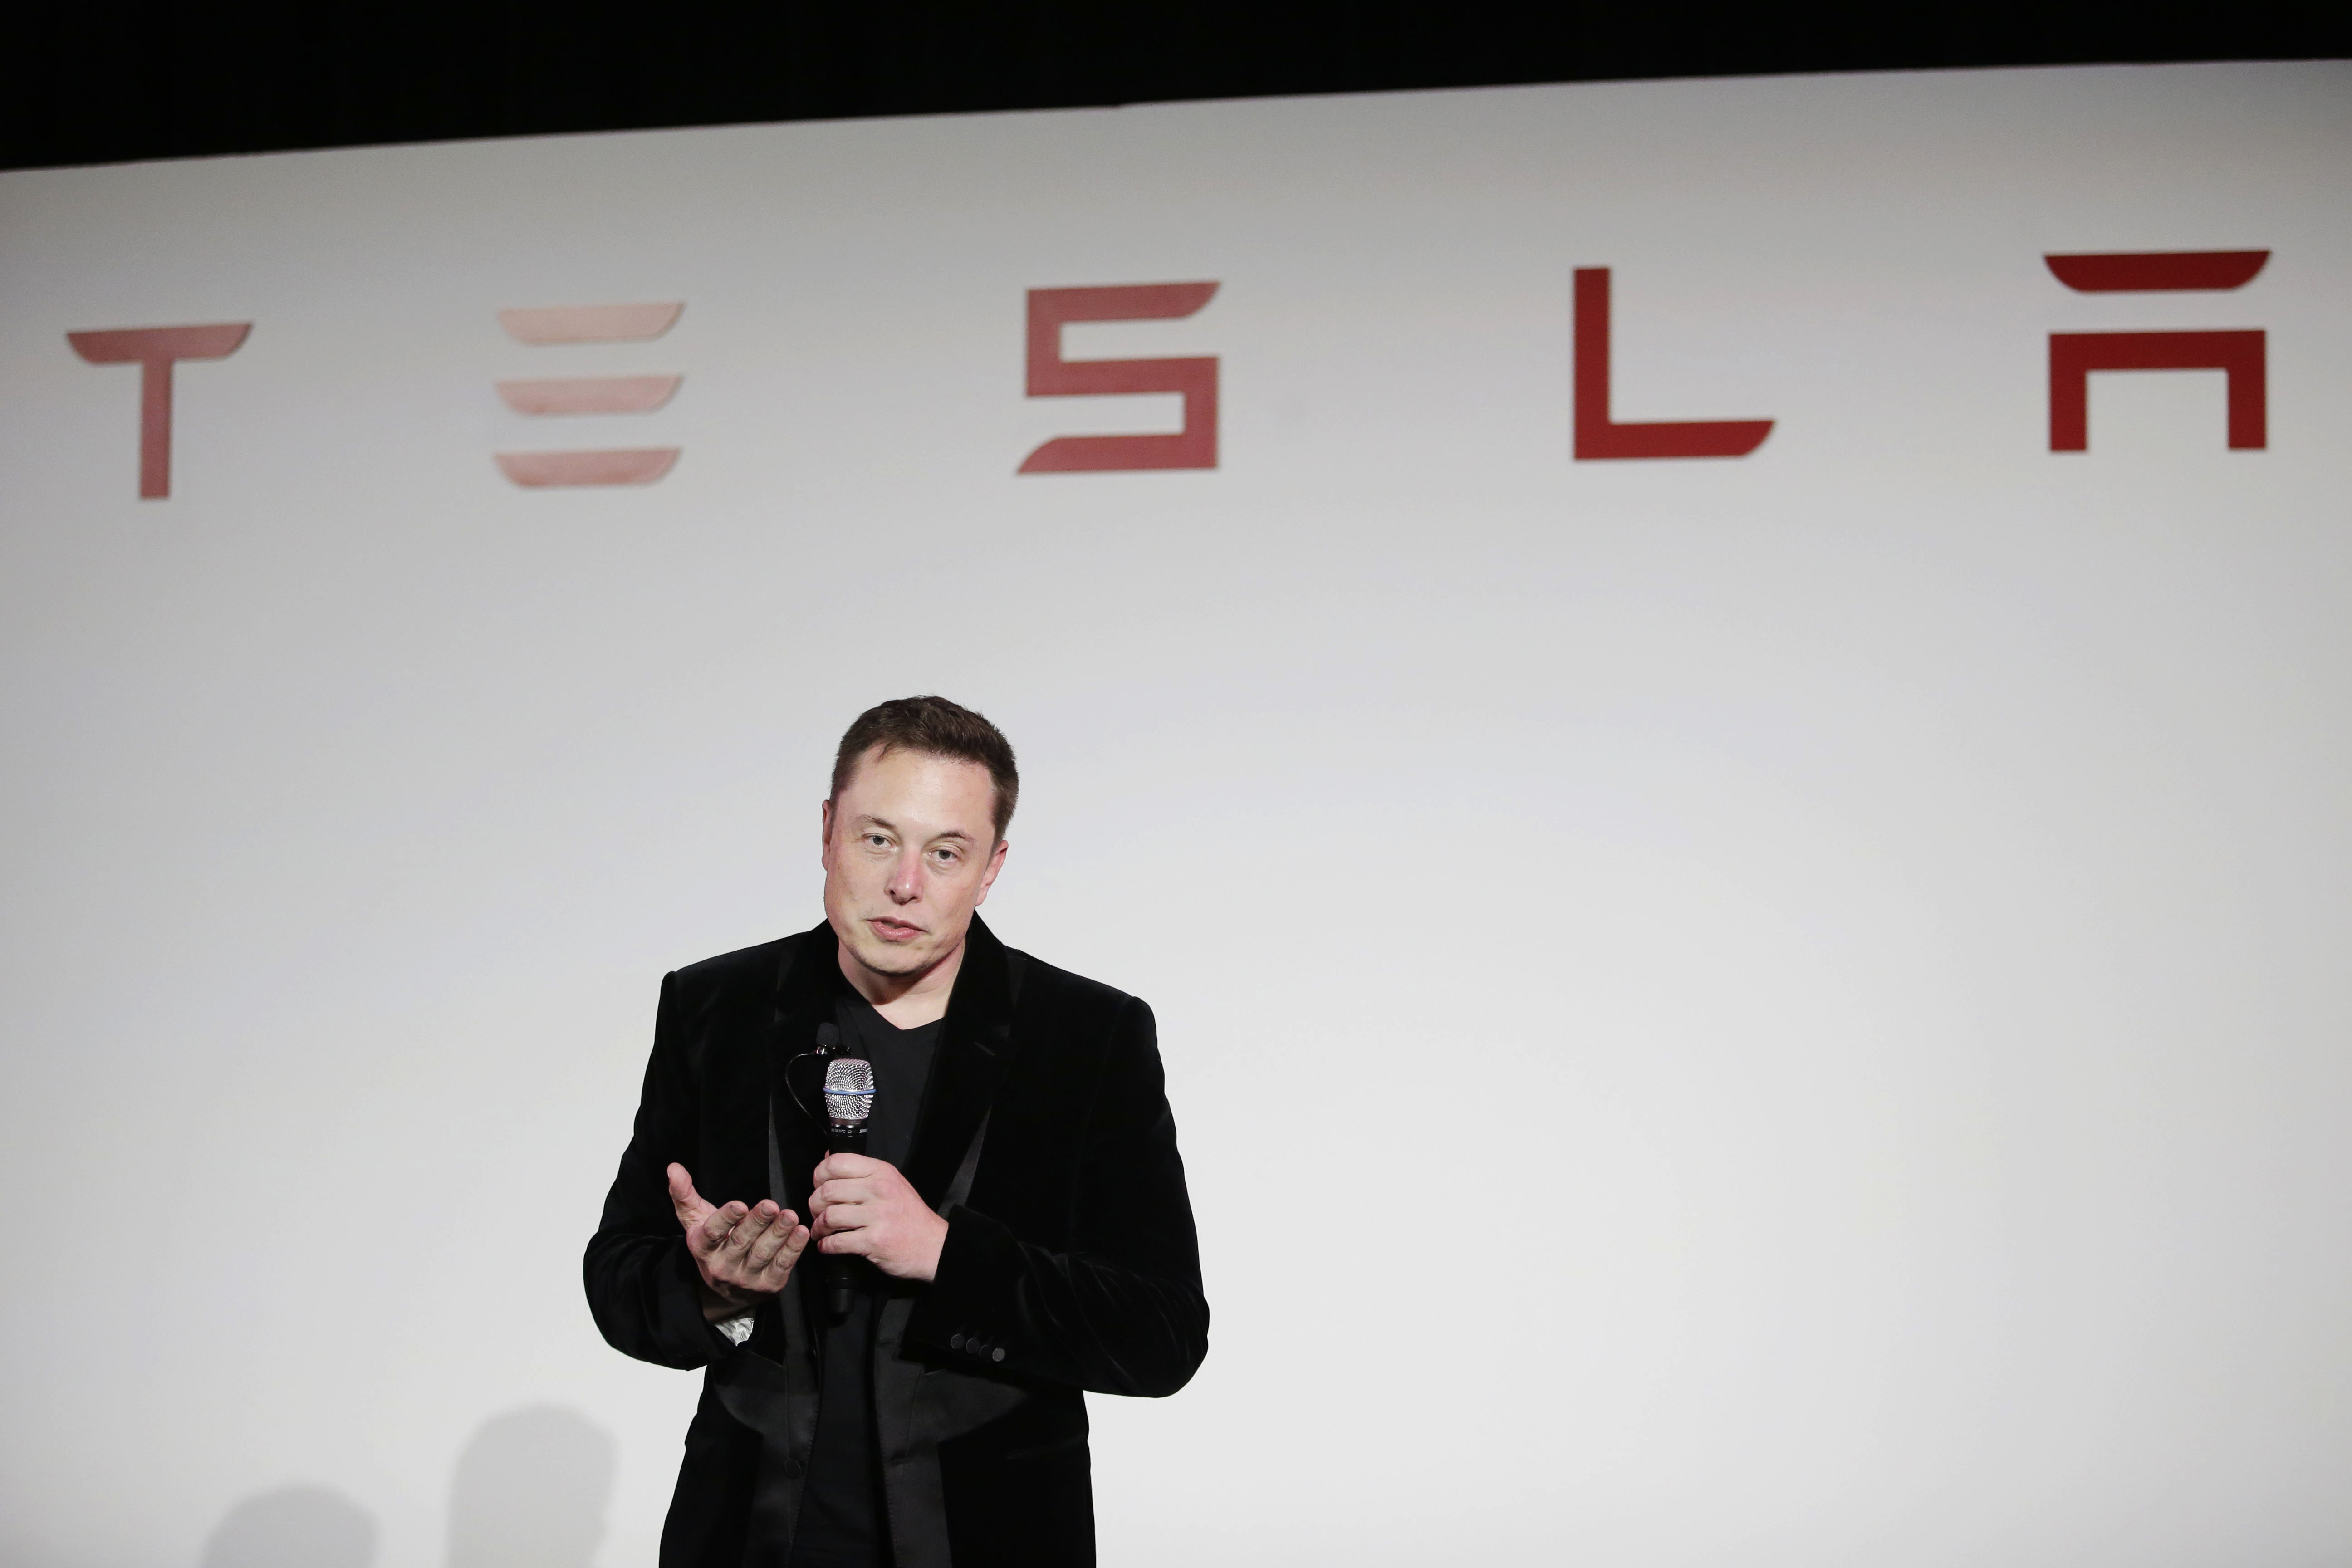 Elon Musk, CEO of Tesla Motors Inc., talks during a news conference at the company's headquarters in Fremont, California, at the end of last September. Musk said Sunday the electric car company is making major improvements to the Autopilot system installed in its vehicles, which will dramatically reduce the number and severity of crashes they're involved in. | AP